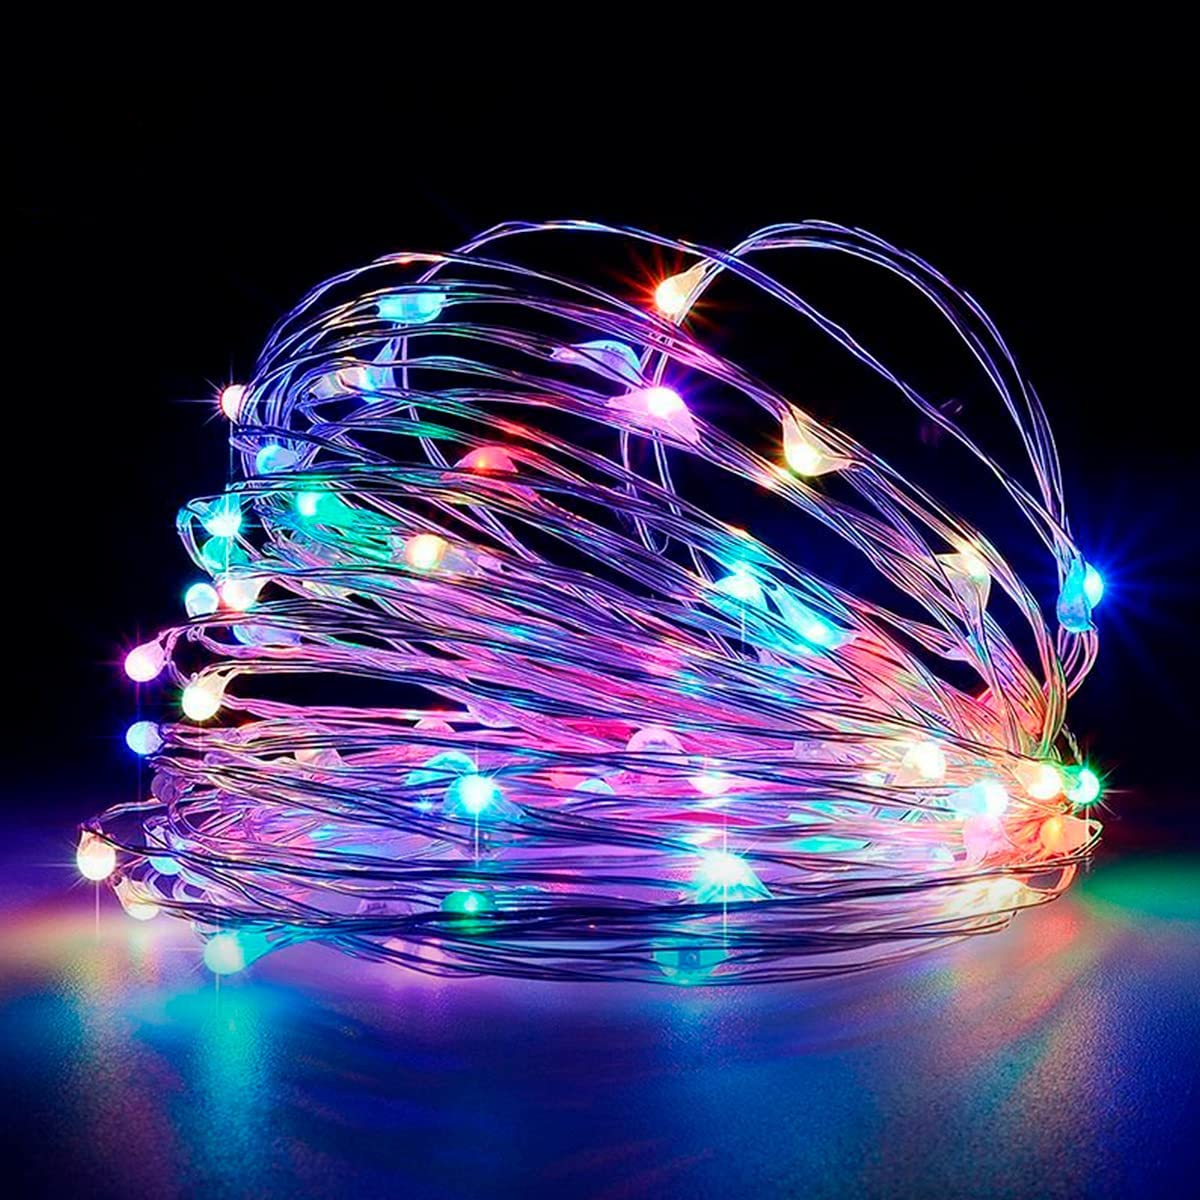 Led String Lights, RGB Fairy Light, 33ft 100 Led USB Operated Silver Wire Starry Lights, IP65 Waterproof Sliver Wire Lights for Bedroom Party Wedding Camping Indoor Outdoor Christmas Decor